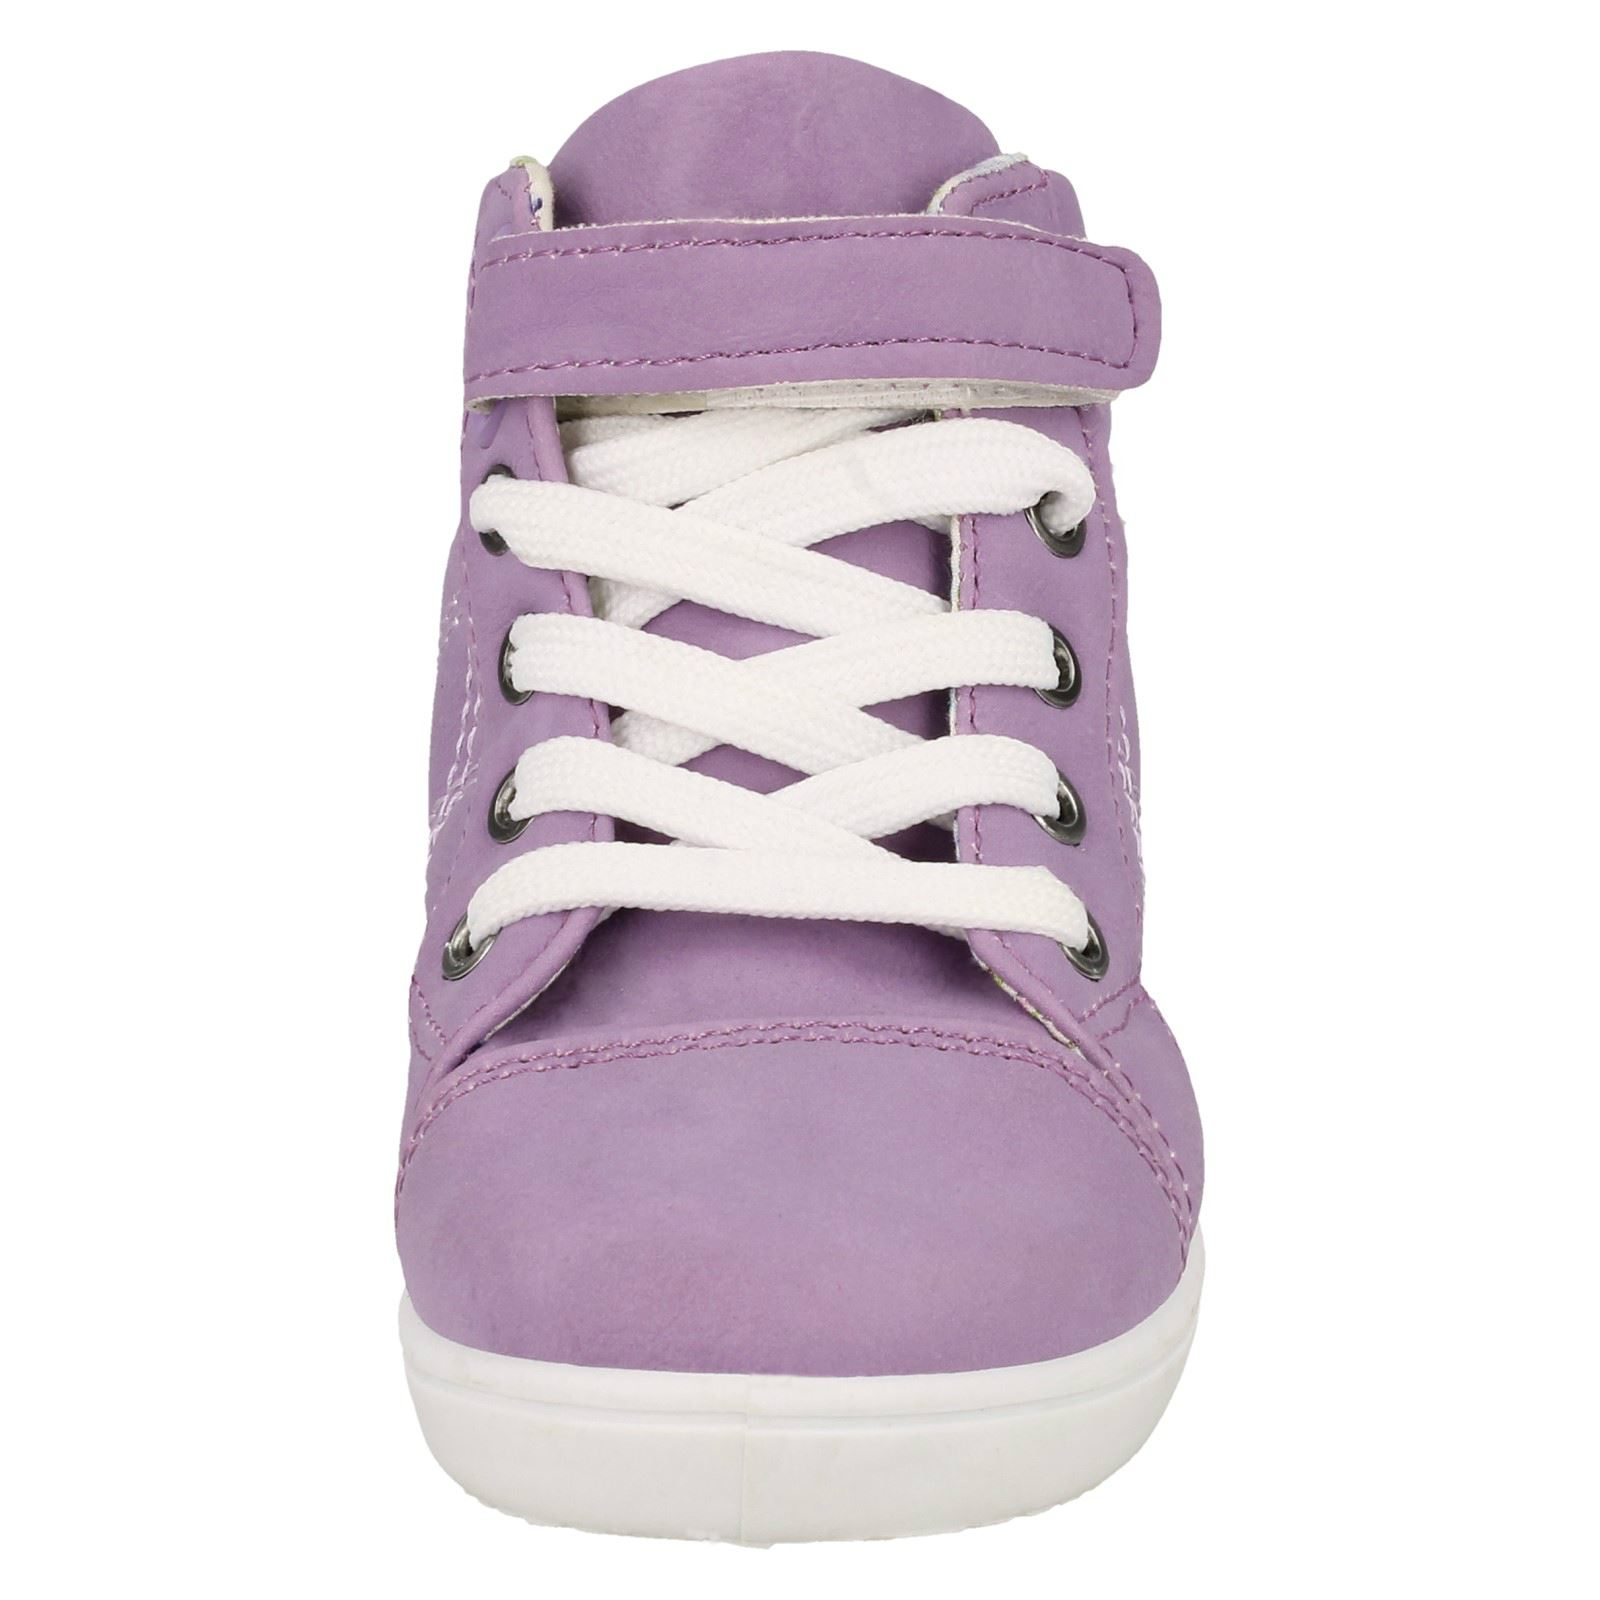 Niñas Spot on High Tops Zapatillas